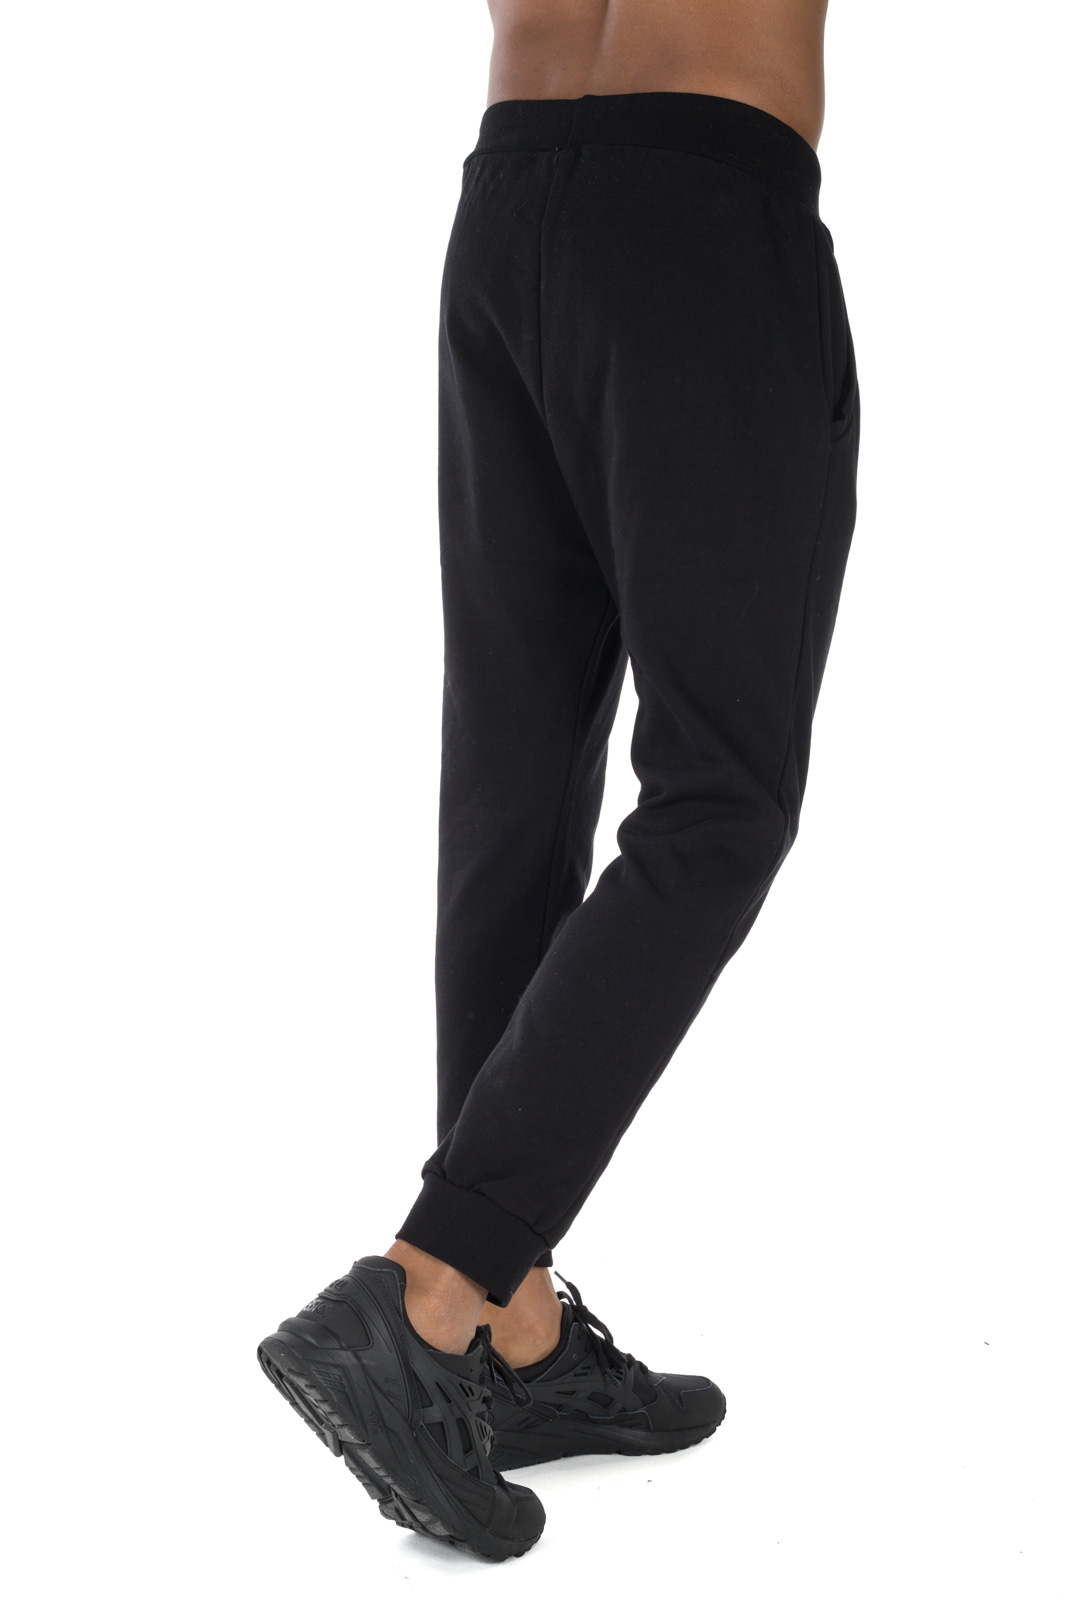 Pyrex - Trousers Black Unisex